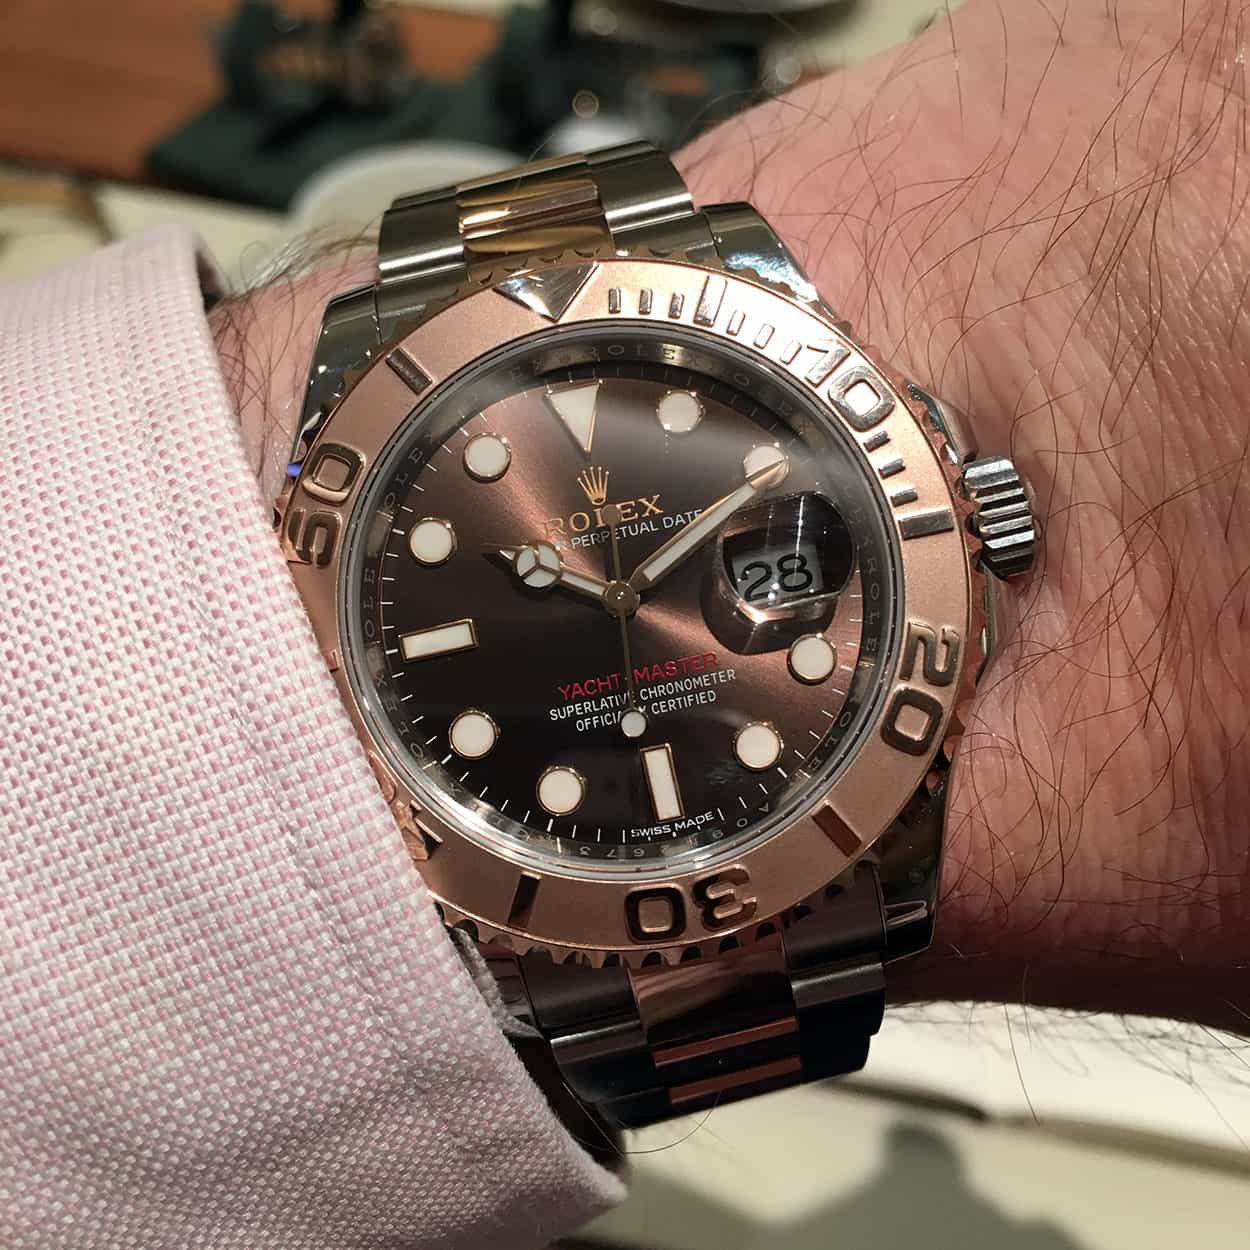 Hands-On With The Rolex Yacht-Master 116621